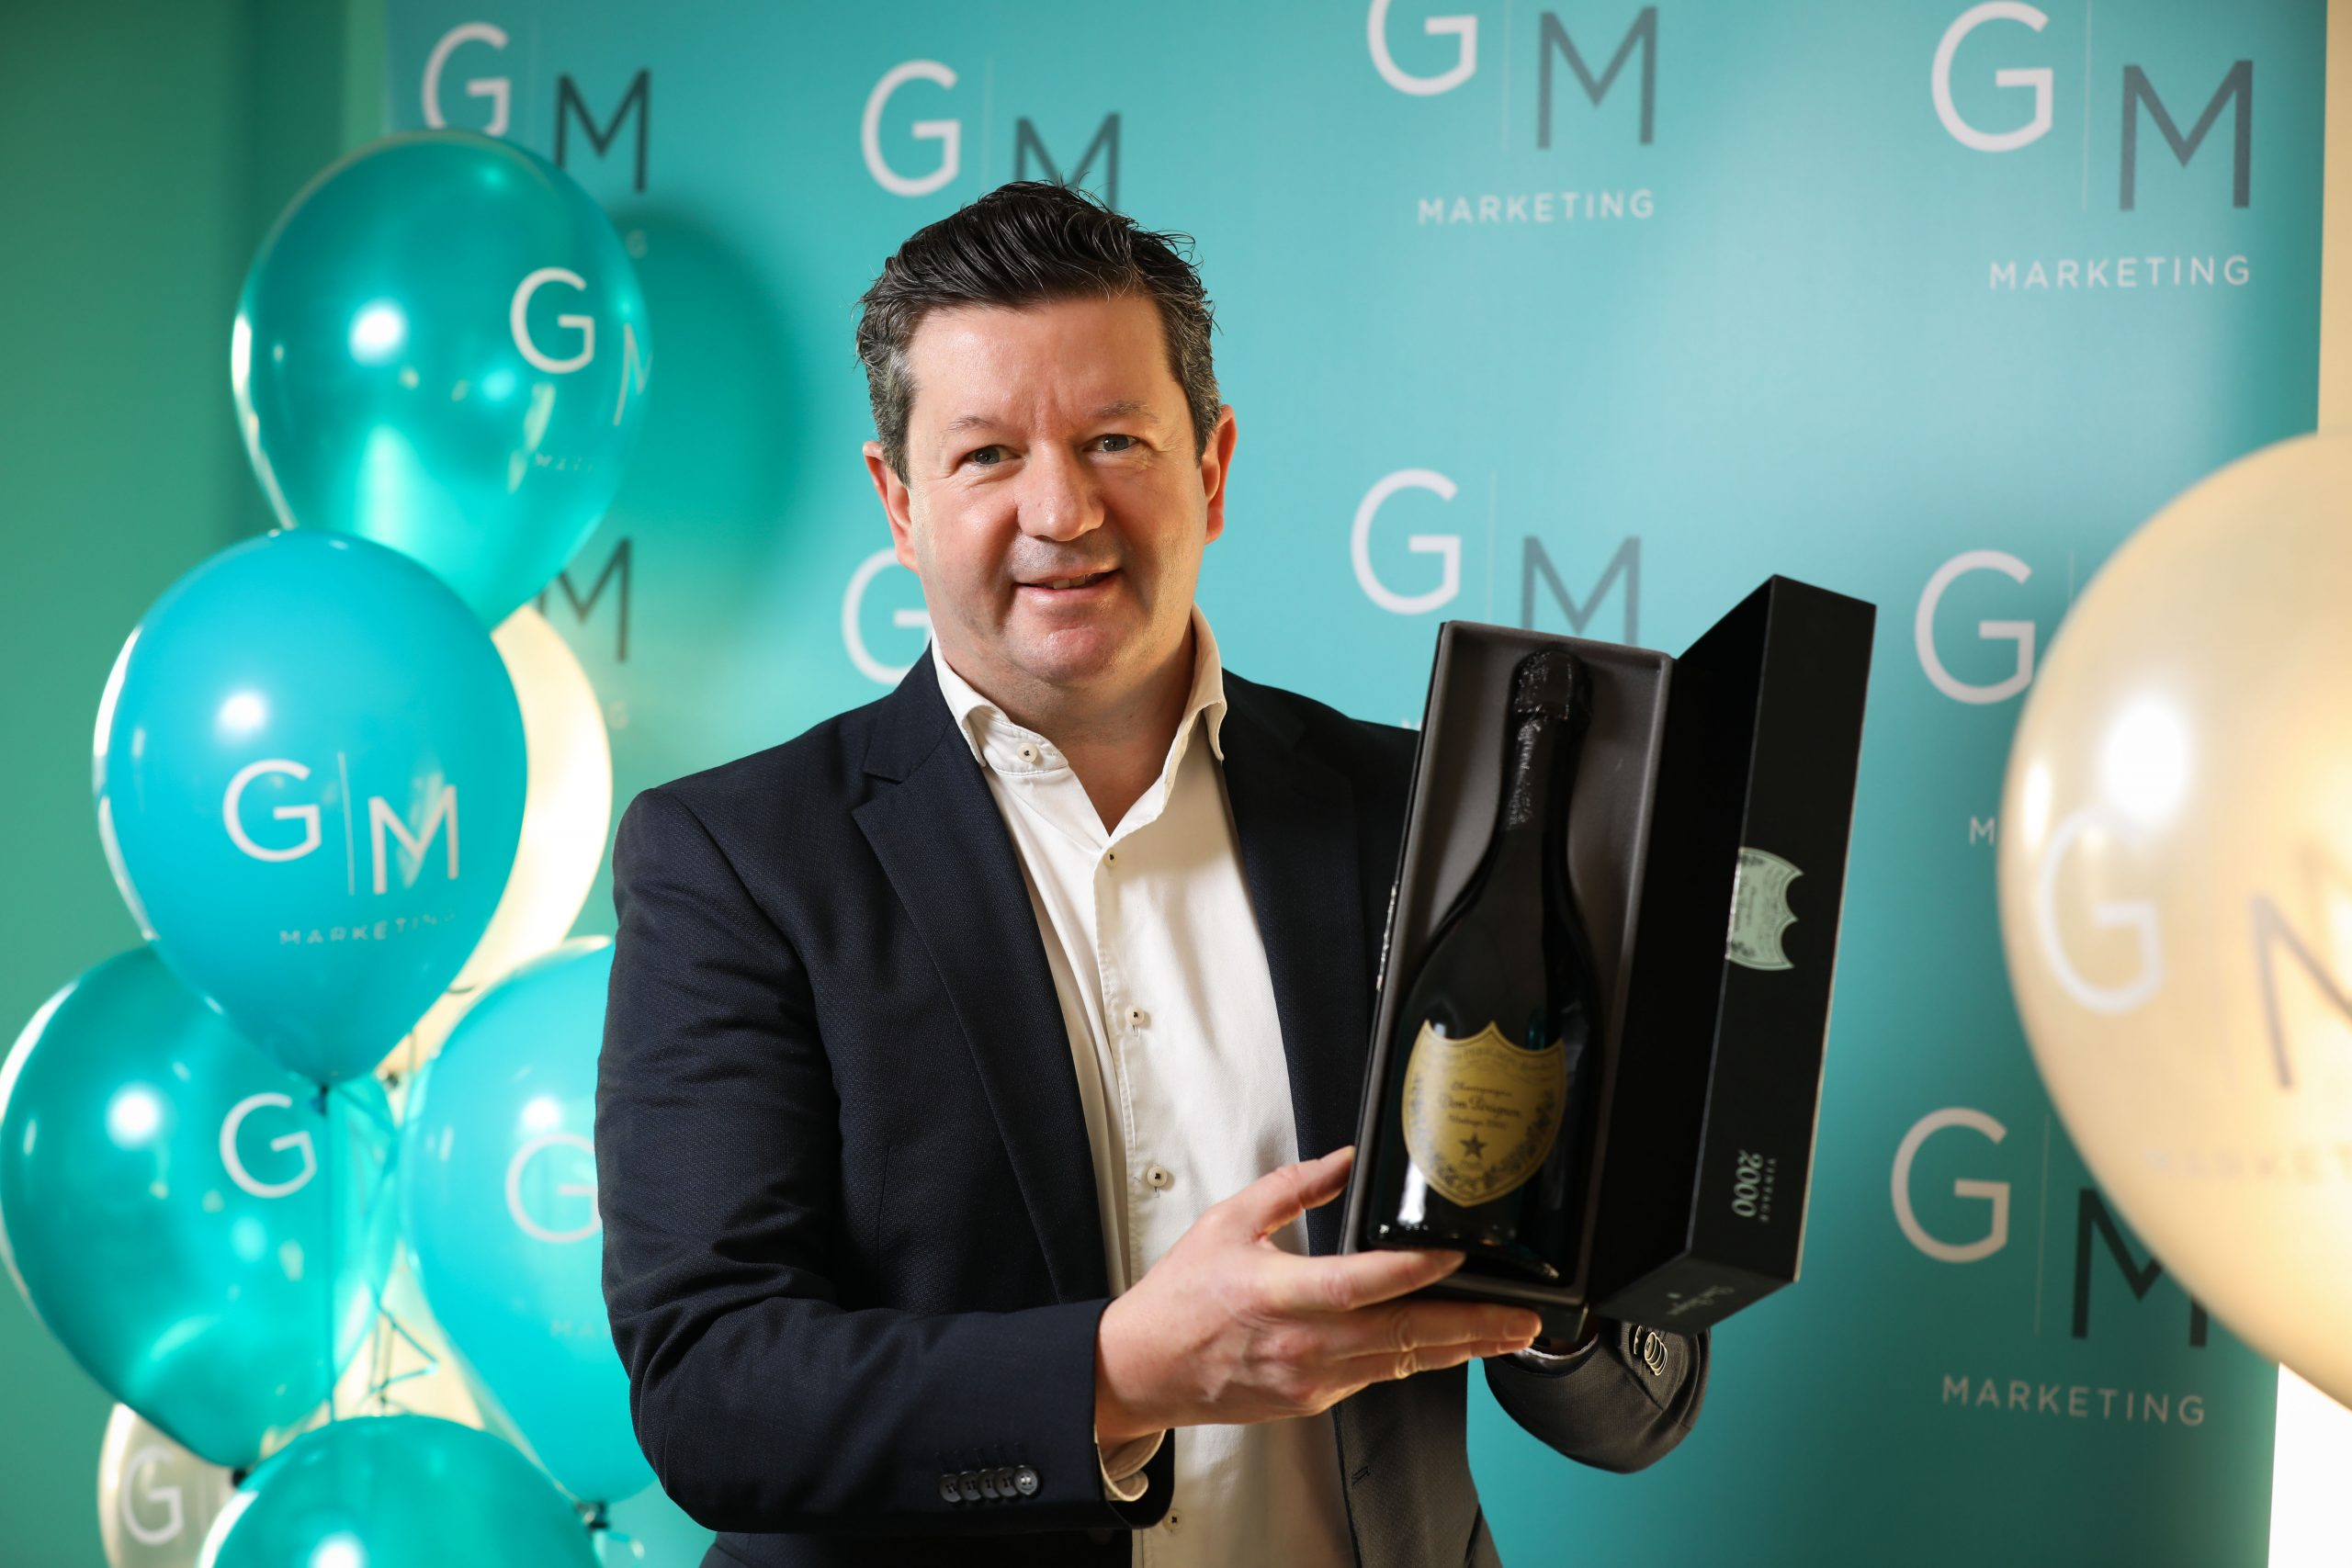 Belfast based but serving all Ireland – GM Marketing celebrates 21 years in business